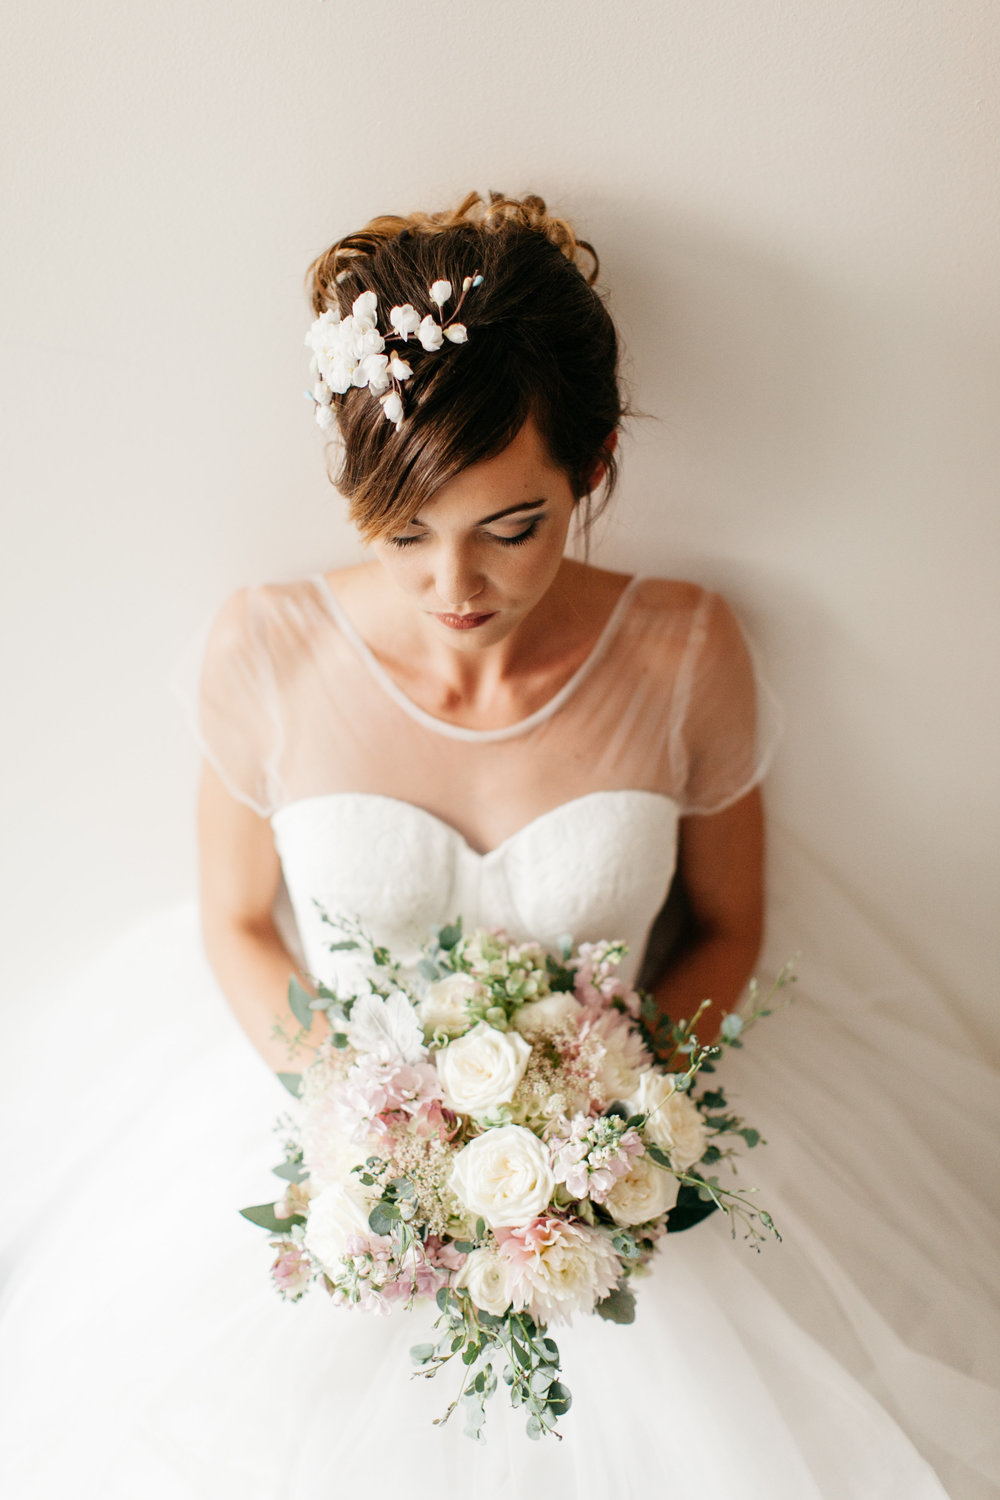 Styled Bridal Shoot-Styled Bridal Shoot-0200.jpg